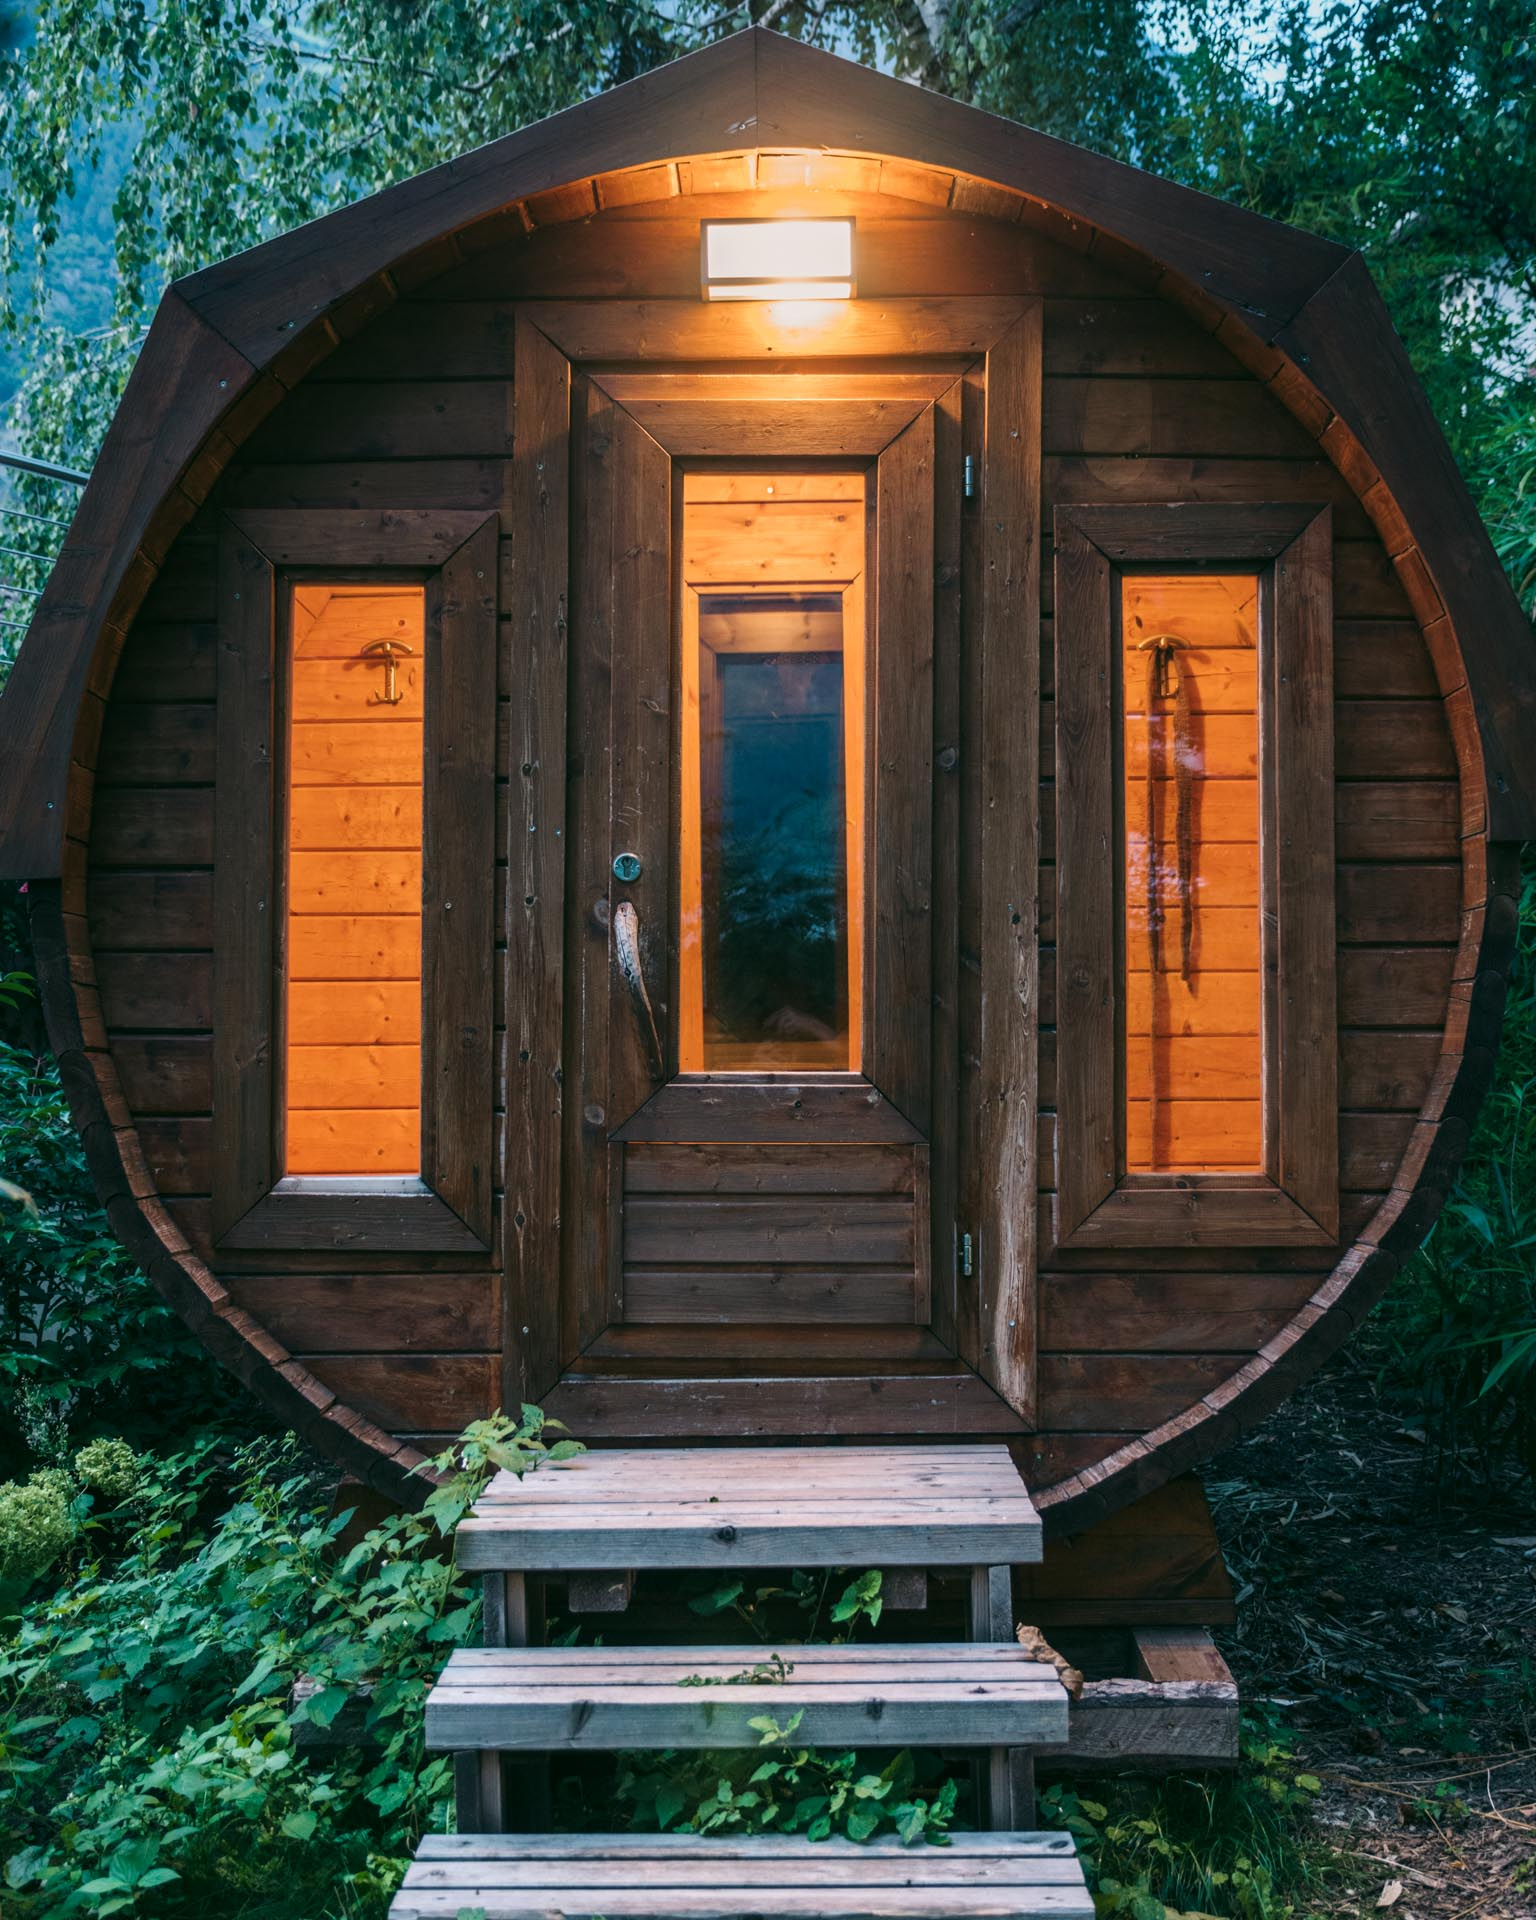 Forest sauna at night